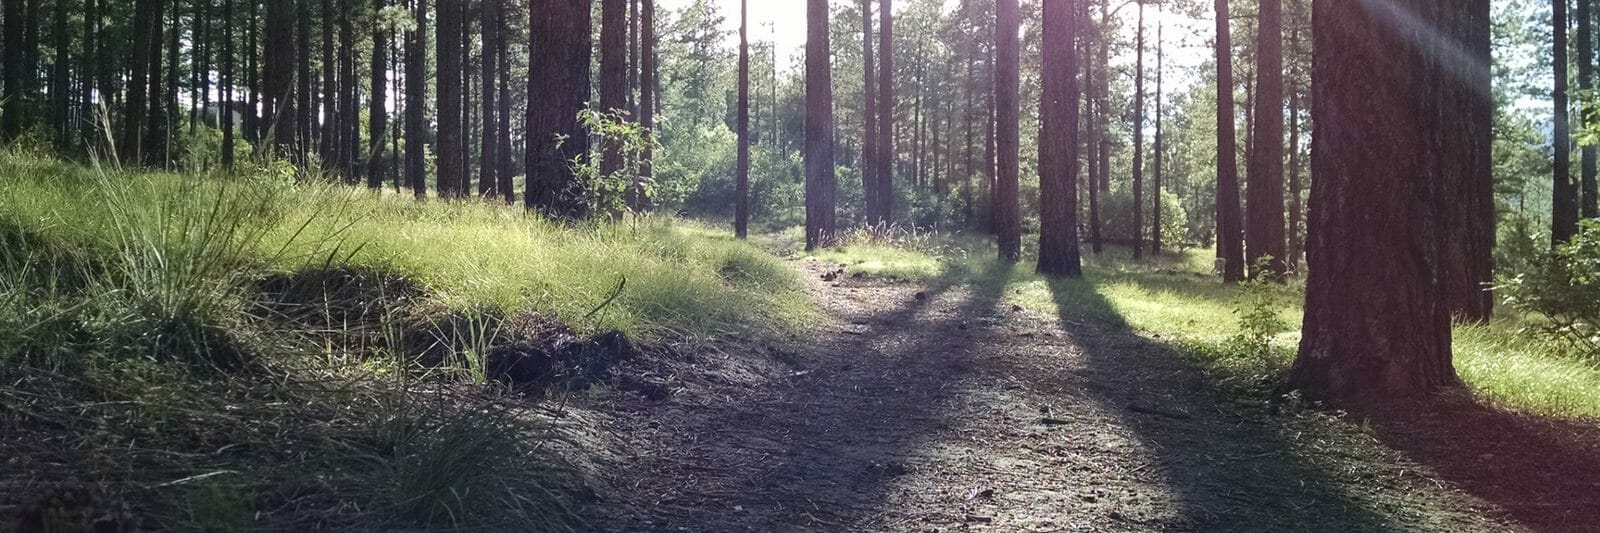 Path through Woods toward Sunlight